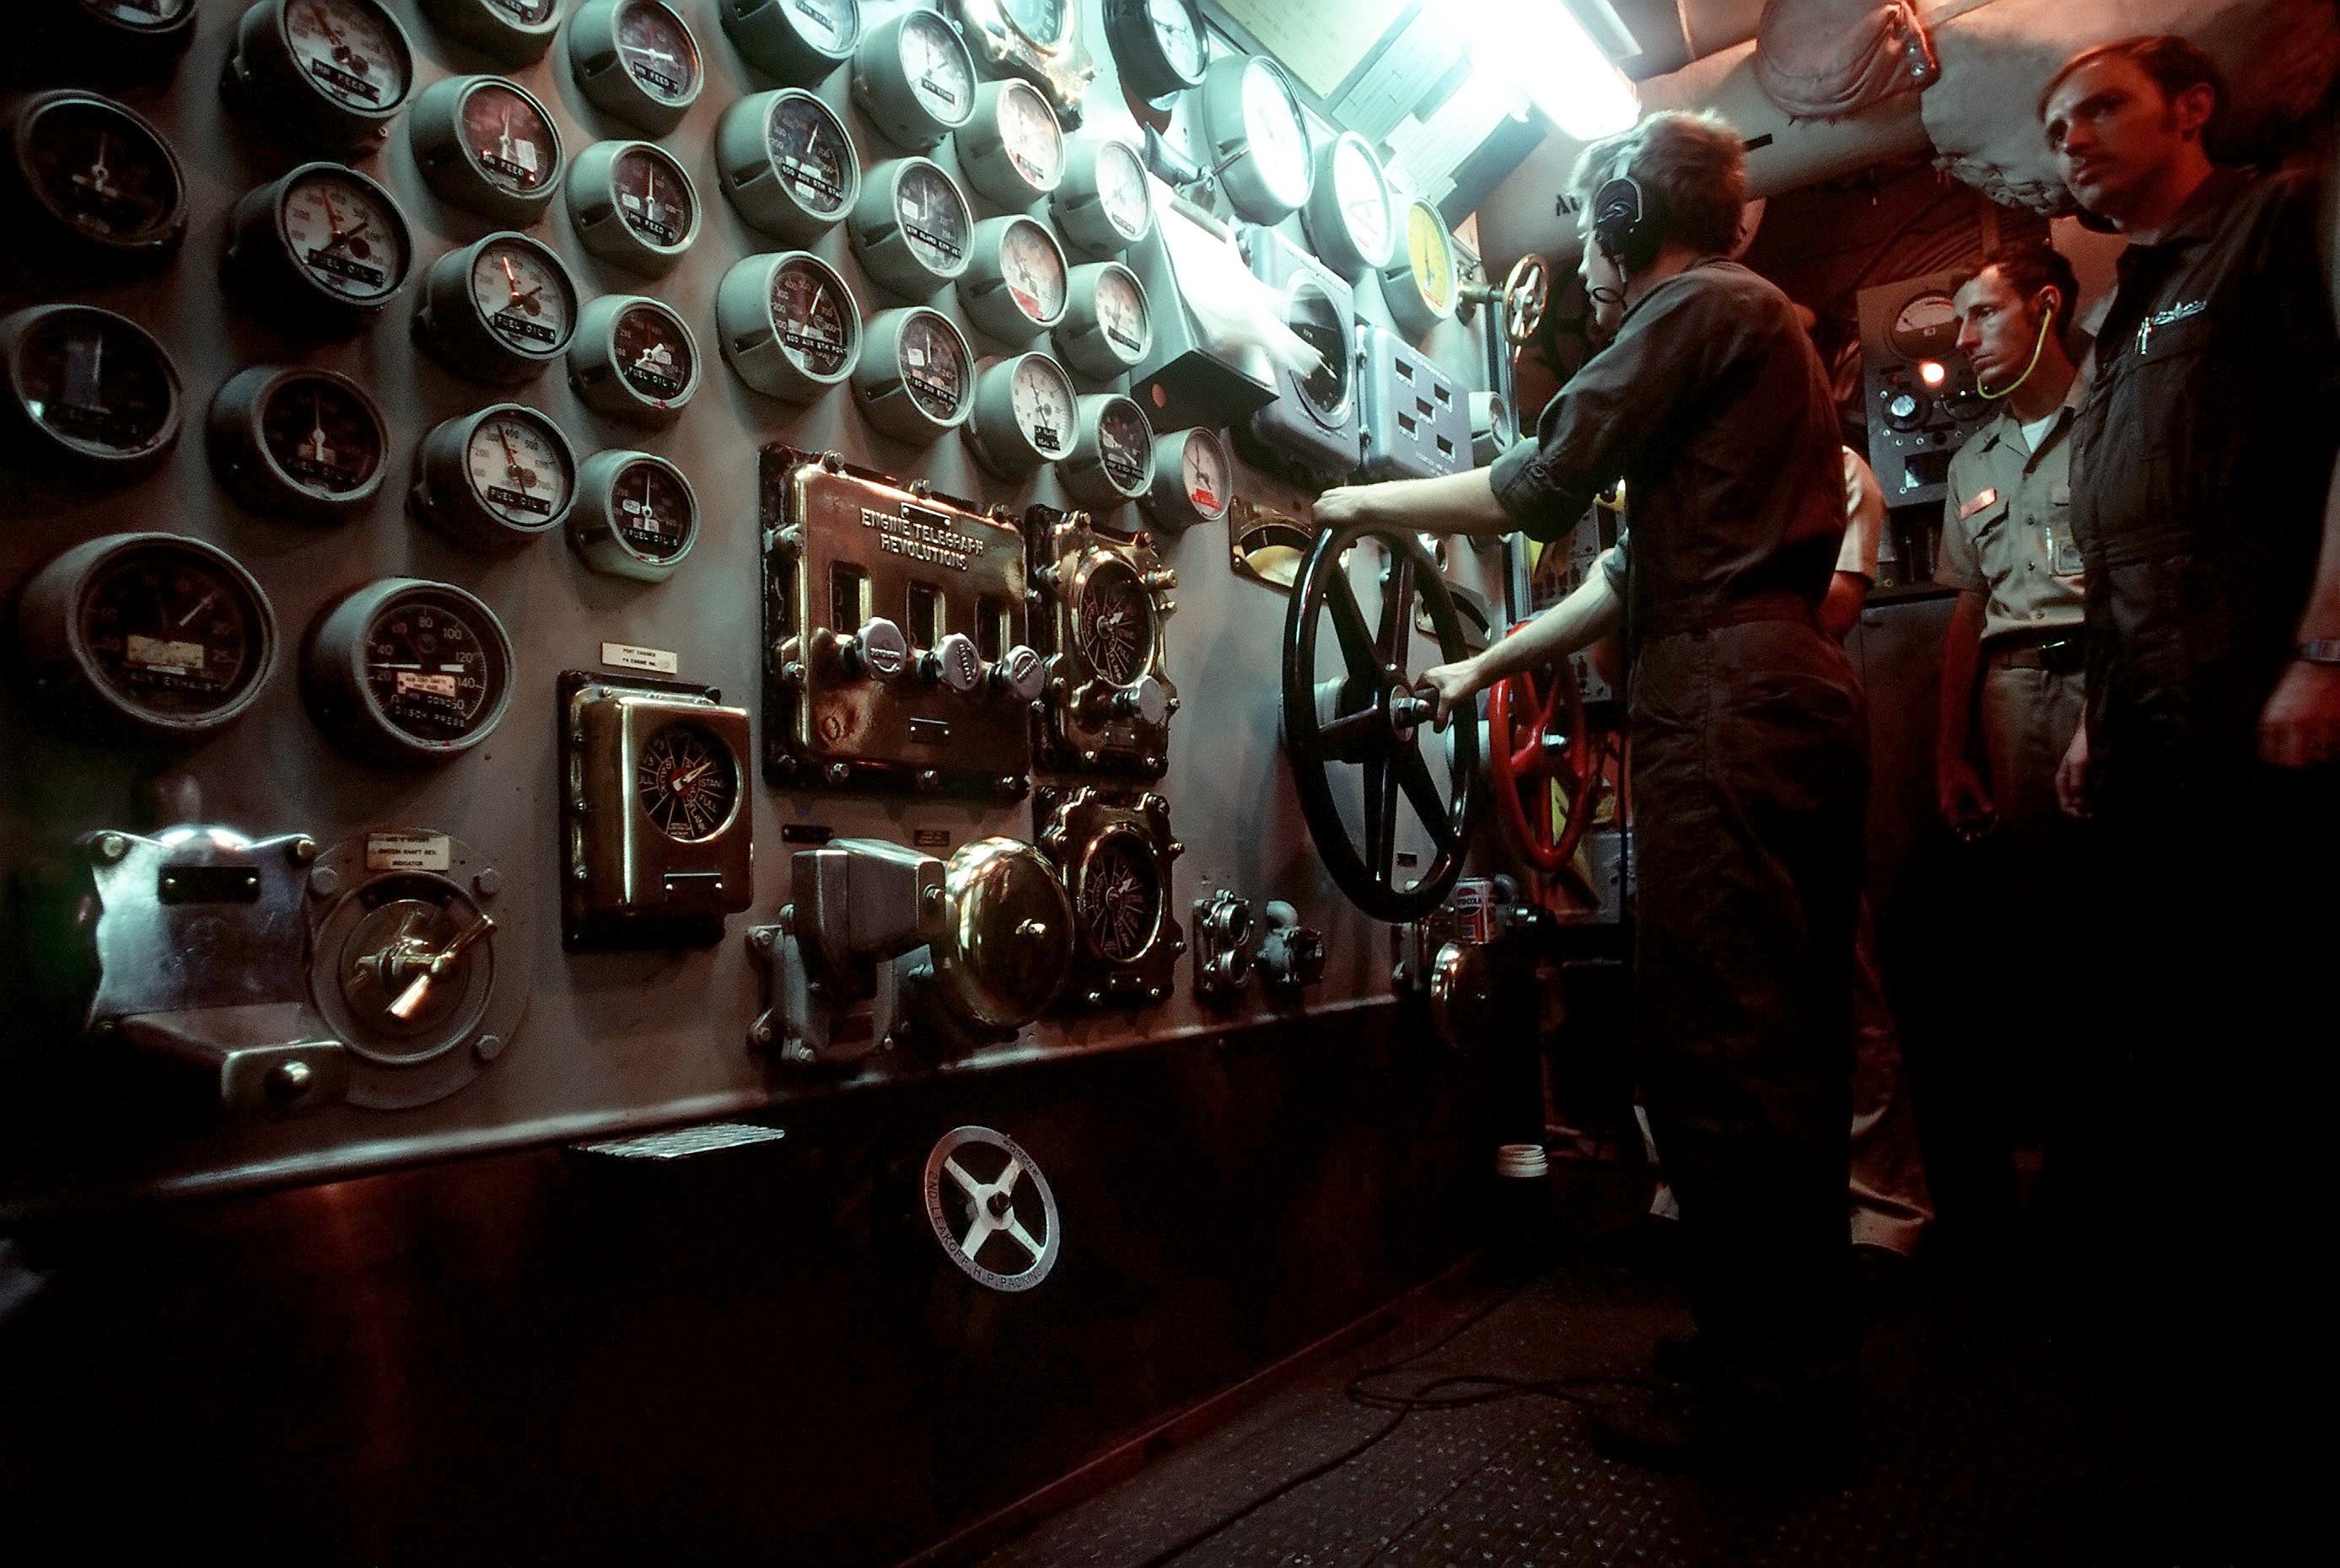 uss_new_jersey_engine_room_controls.jpg